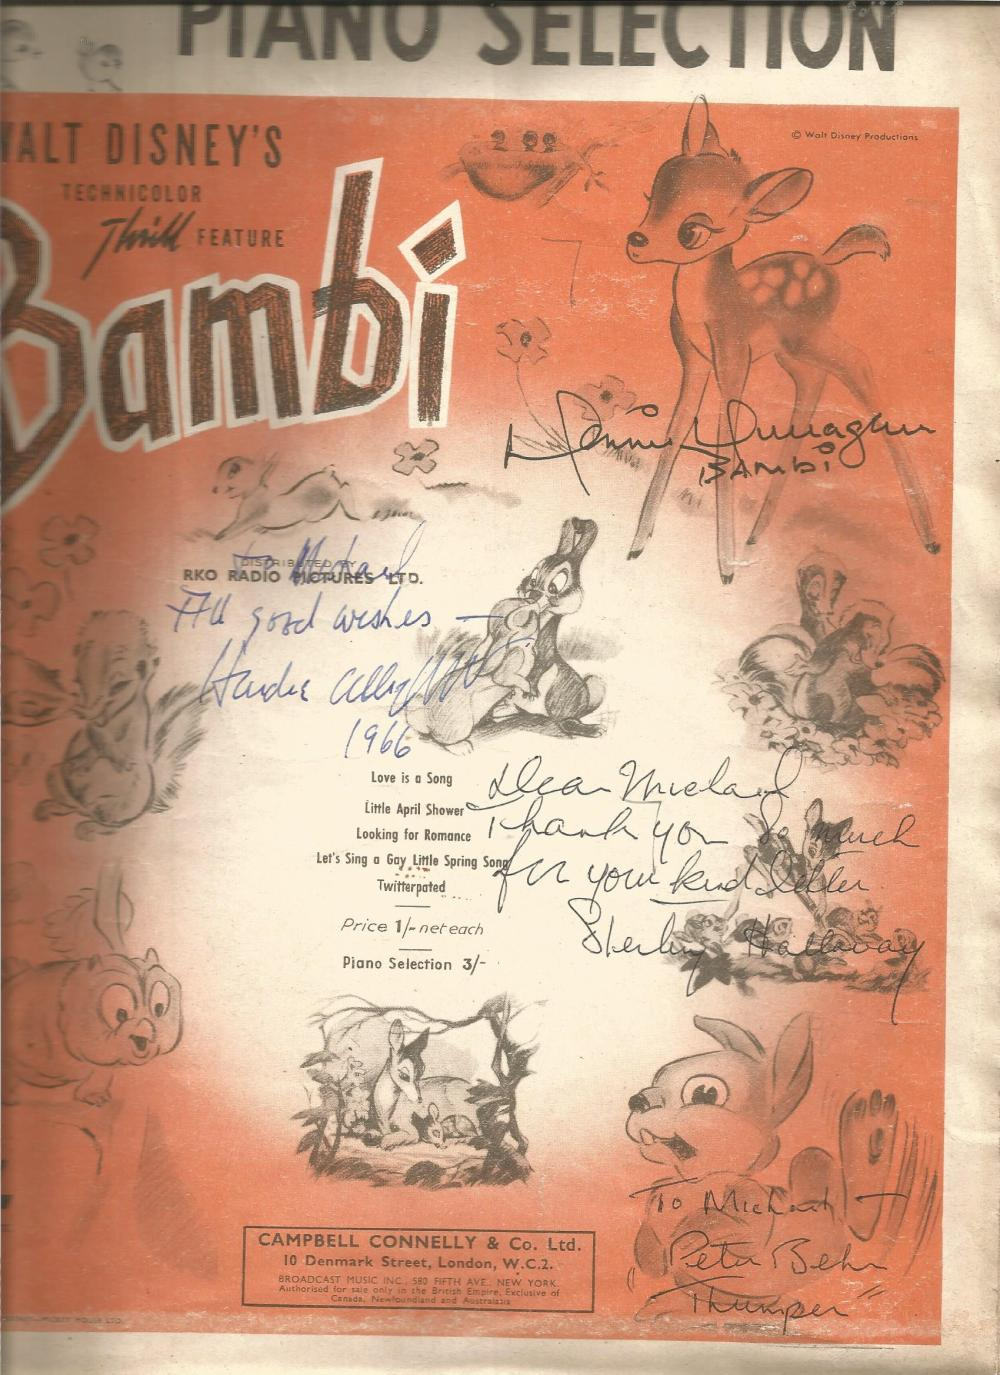 Multi signed Bambi music score. Signed by Donnie Dunagan, Hardie Albright, Sterling Holloway and